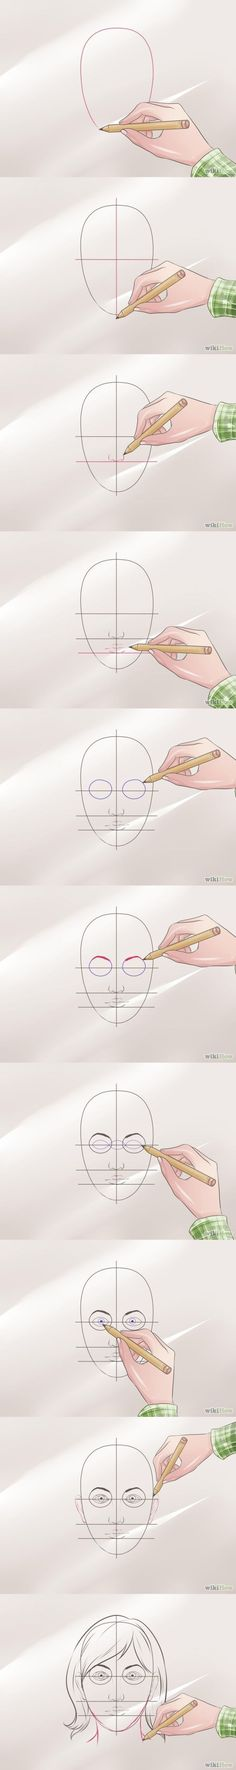 How to draw a face Step by step tutorial Wikihow #draw #face #drawing #how to by olga